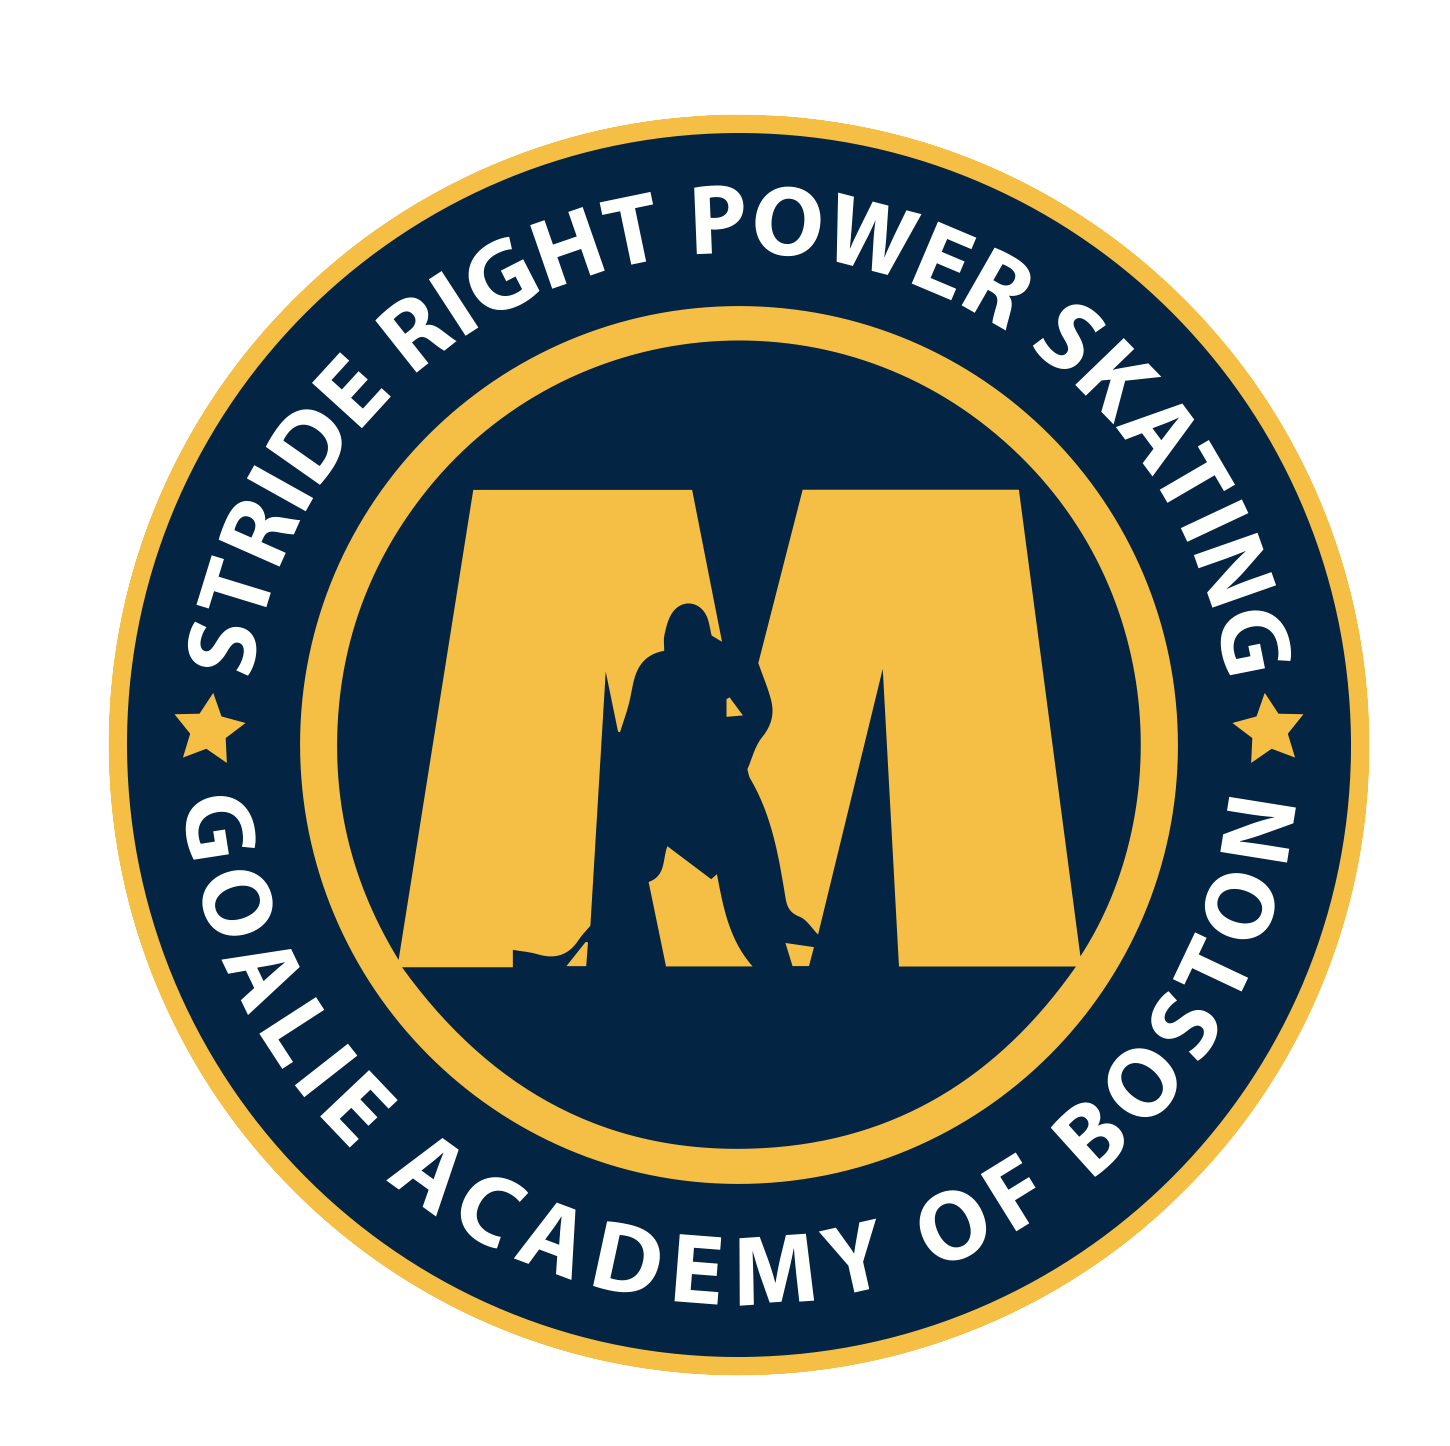 Michal's Hockey Academy